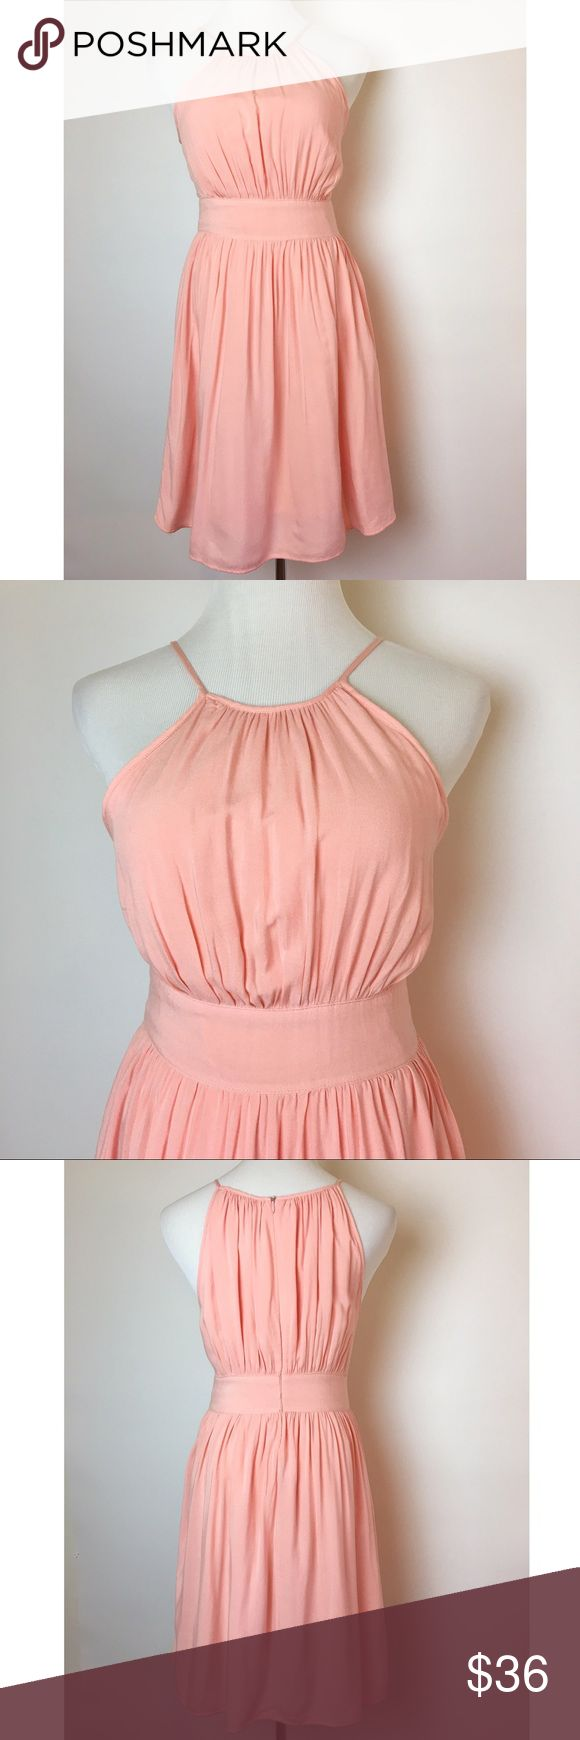 Zara Basic peach halter dress Adorable gathered halter with hidden back zipper and fitted waist. Light peachy pink color. Soft viscose with cotton lining. Excellent condition. Zara Dresses